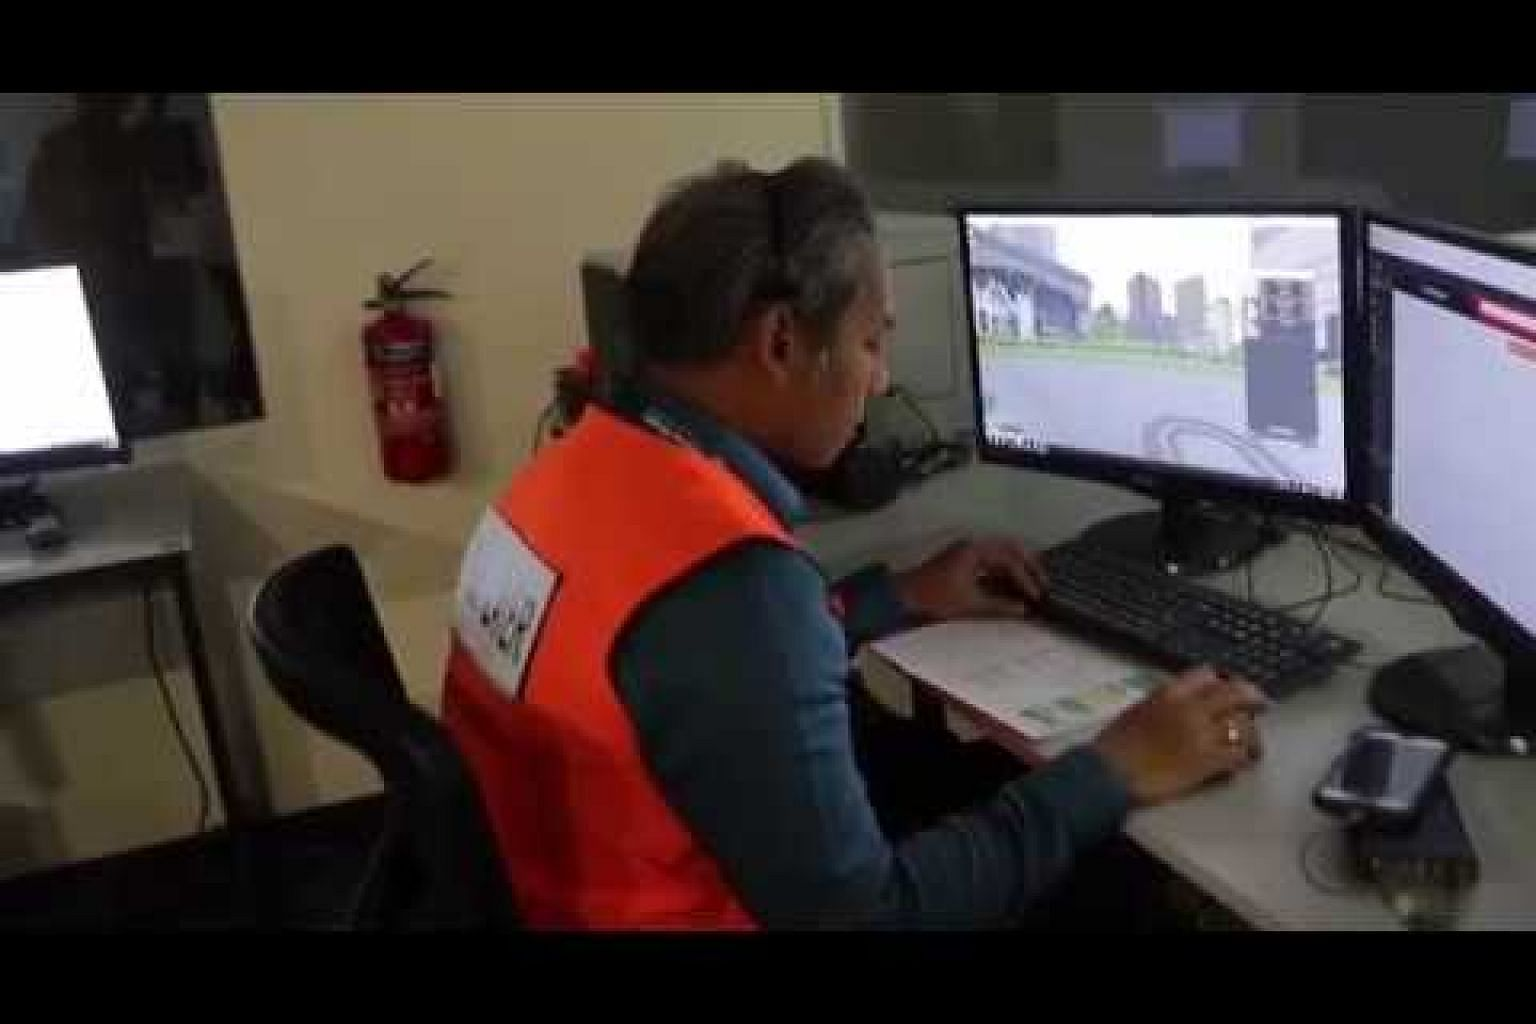 Demonstration of Home Team Simulation System in action